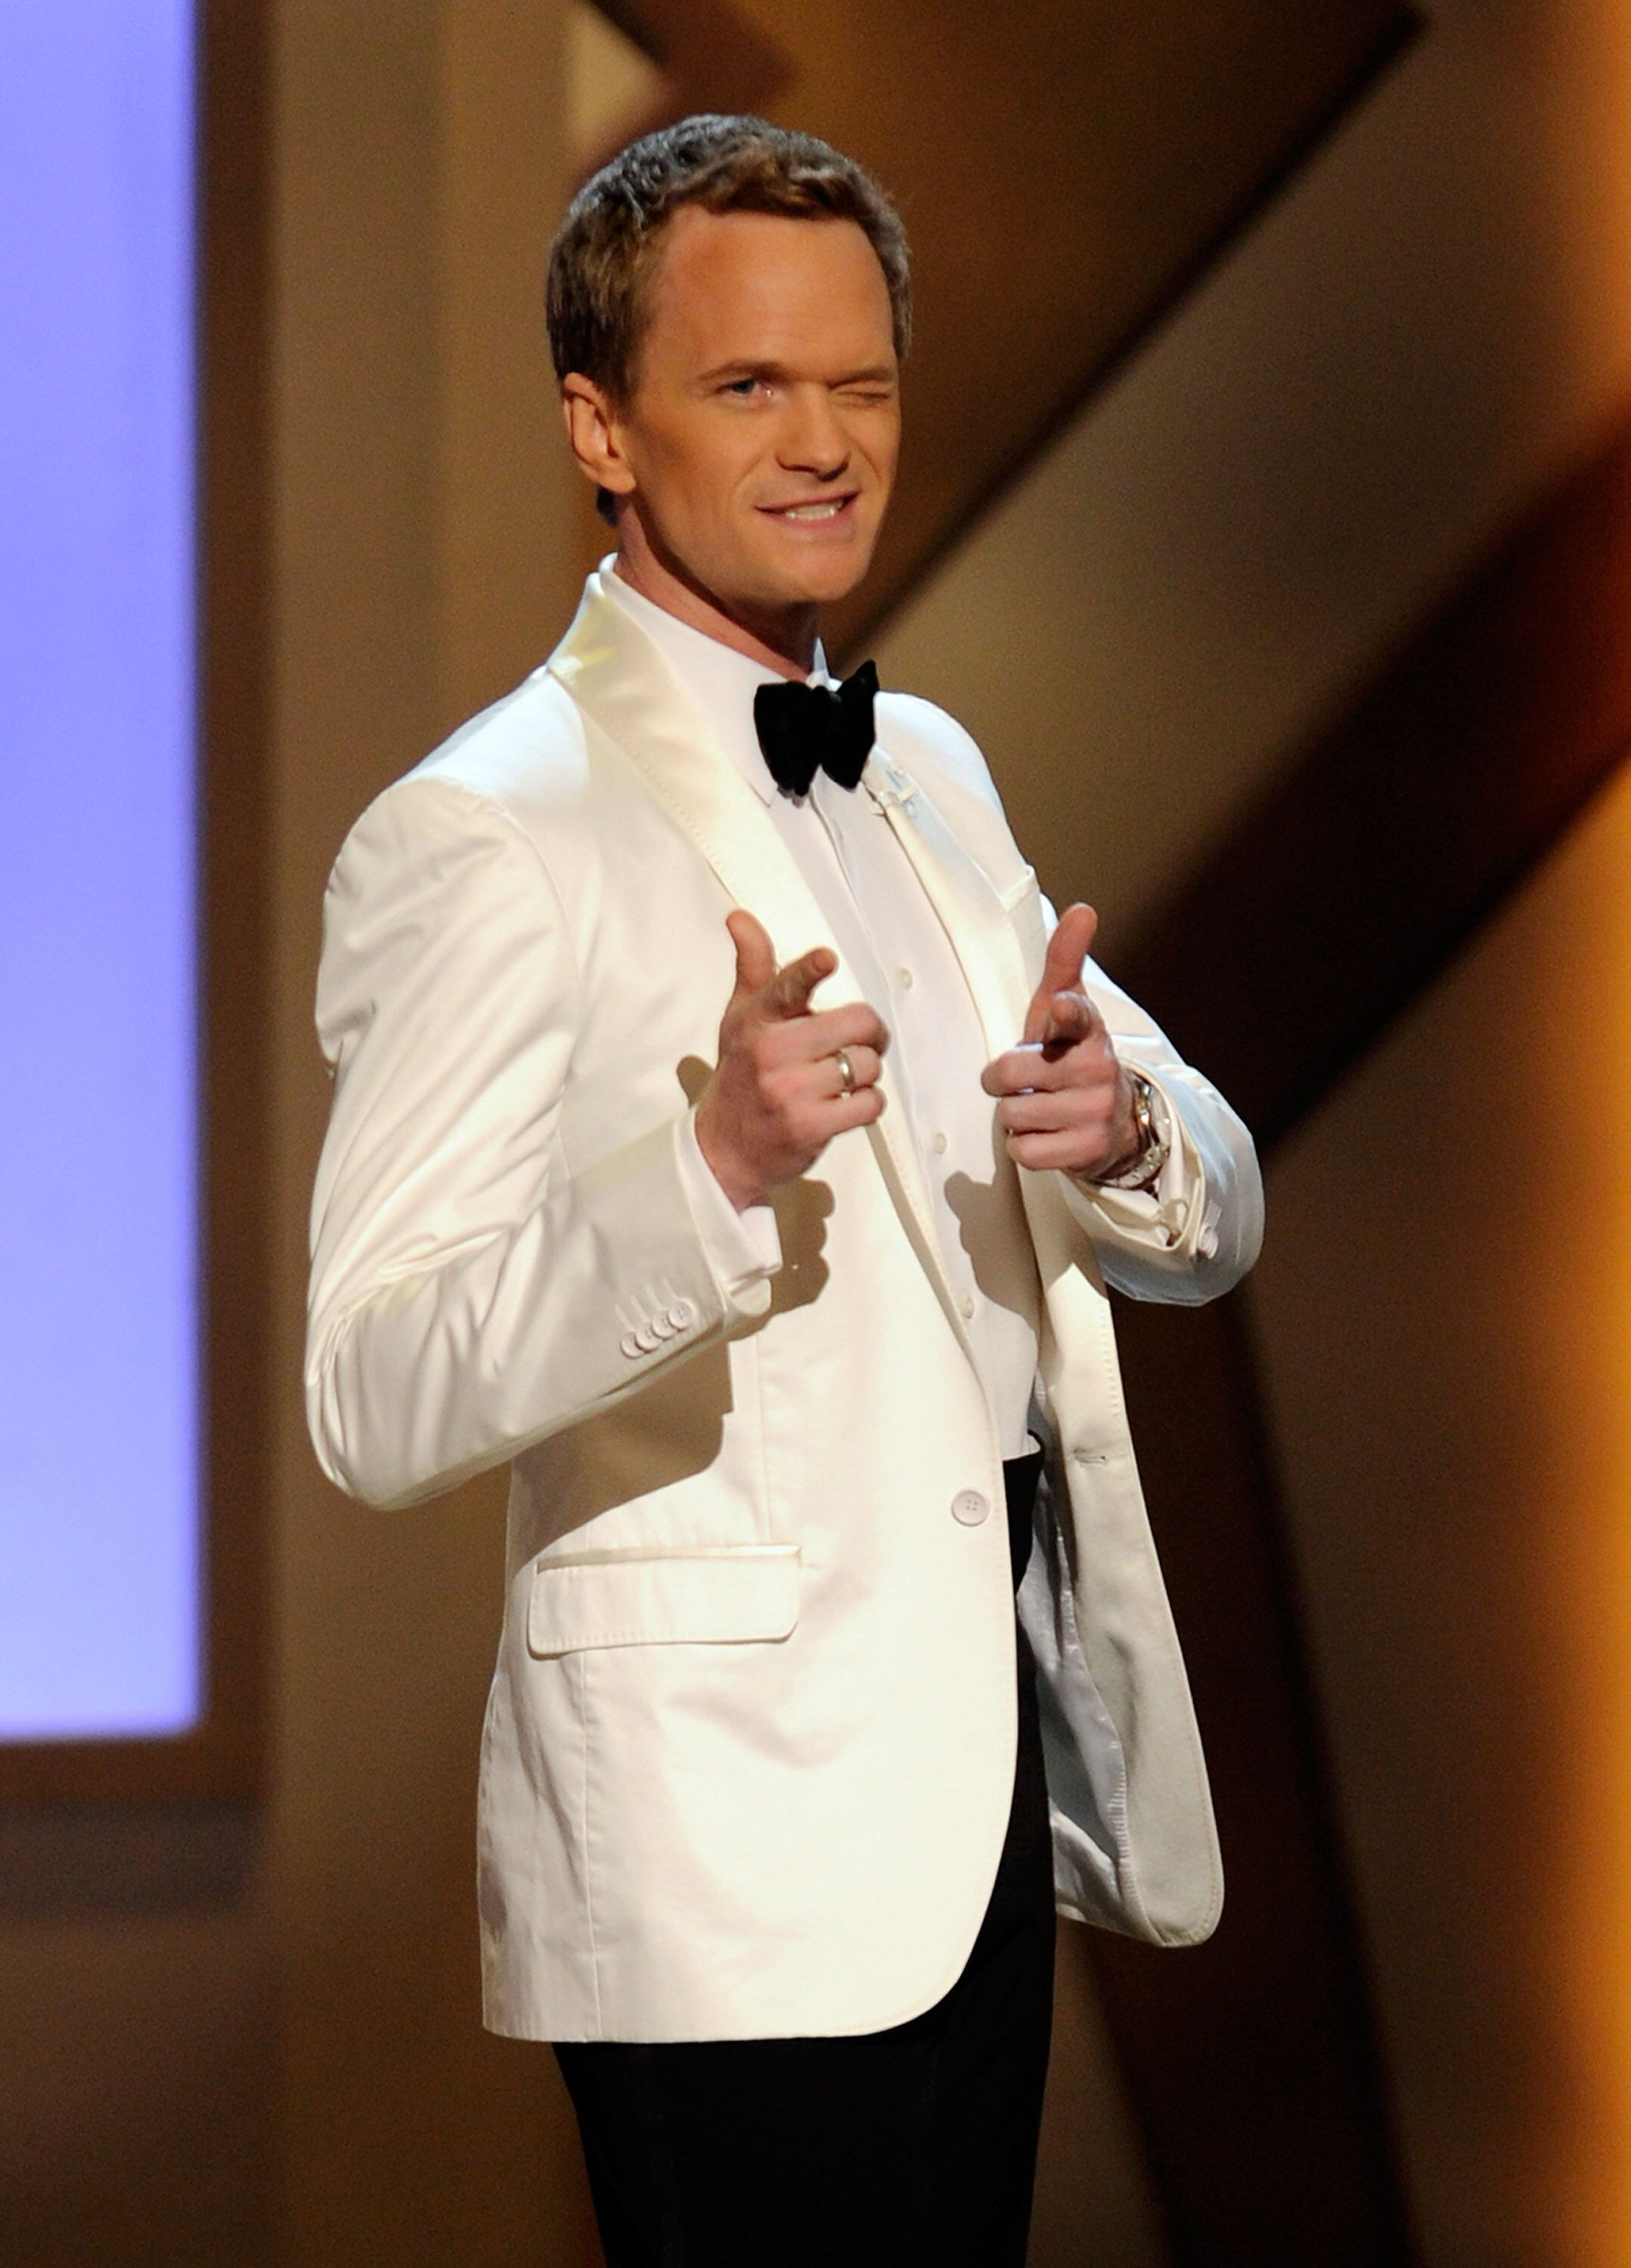 Neil Patrick Harris hosts the opening night of The Smith Center for the Performing Artsin 2012 in Las Vegas | Source: Getty Images